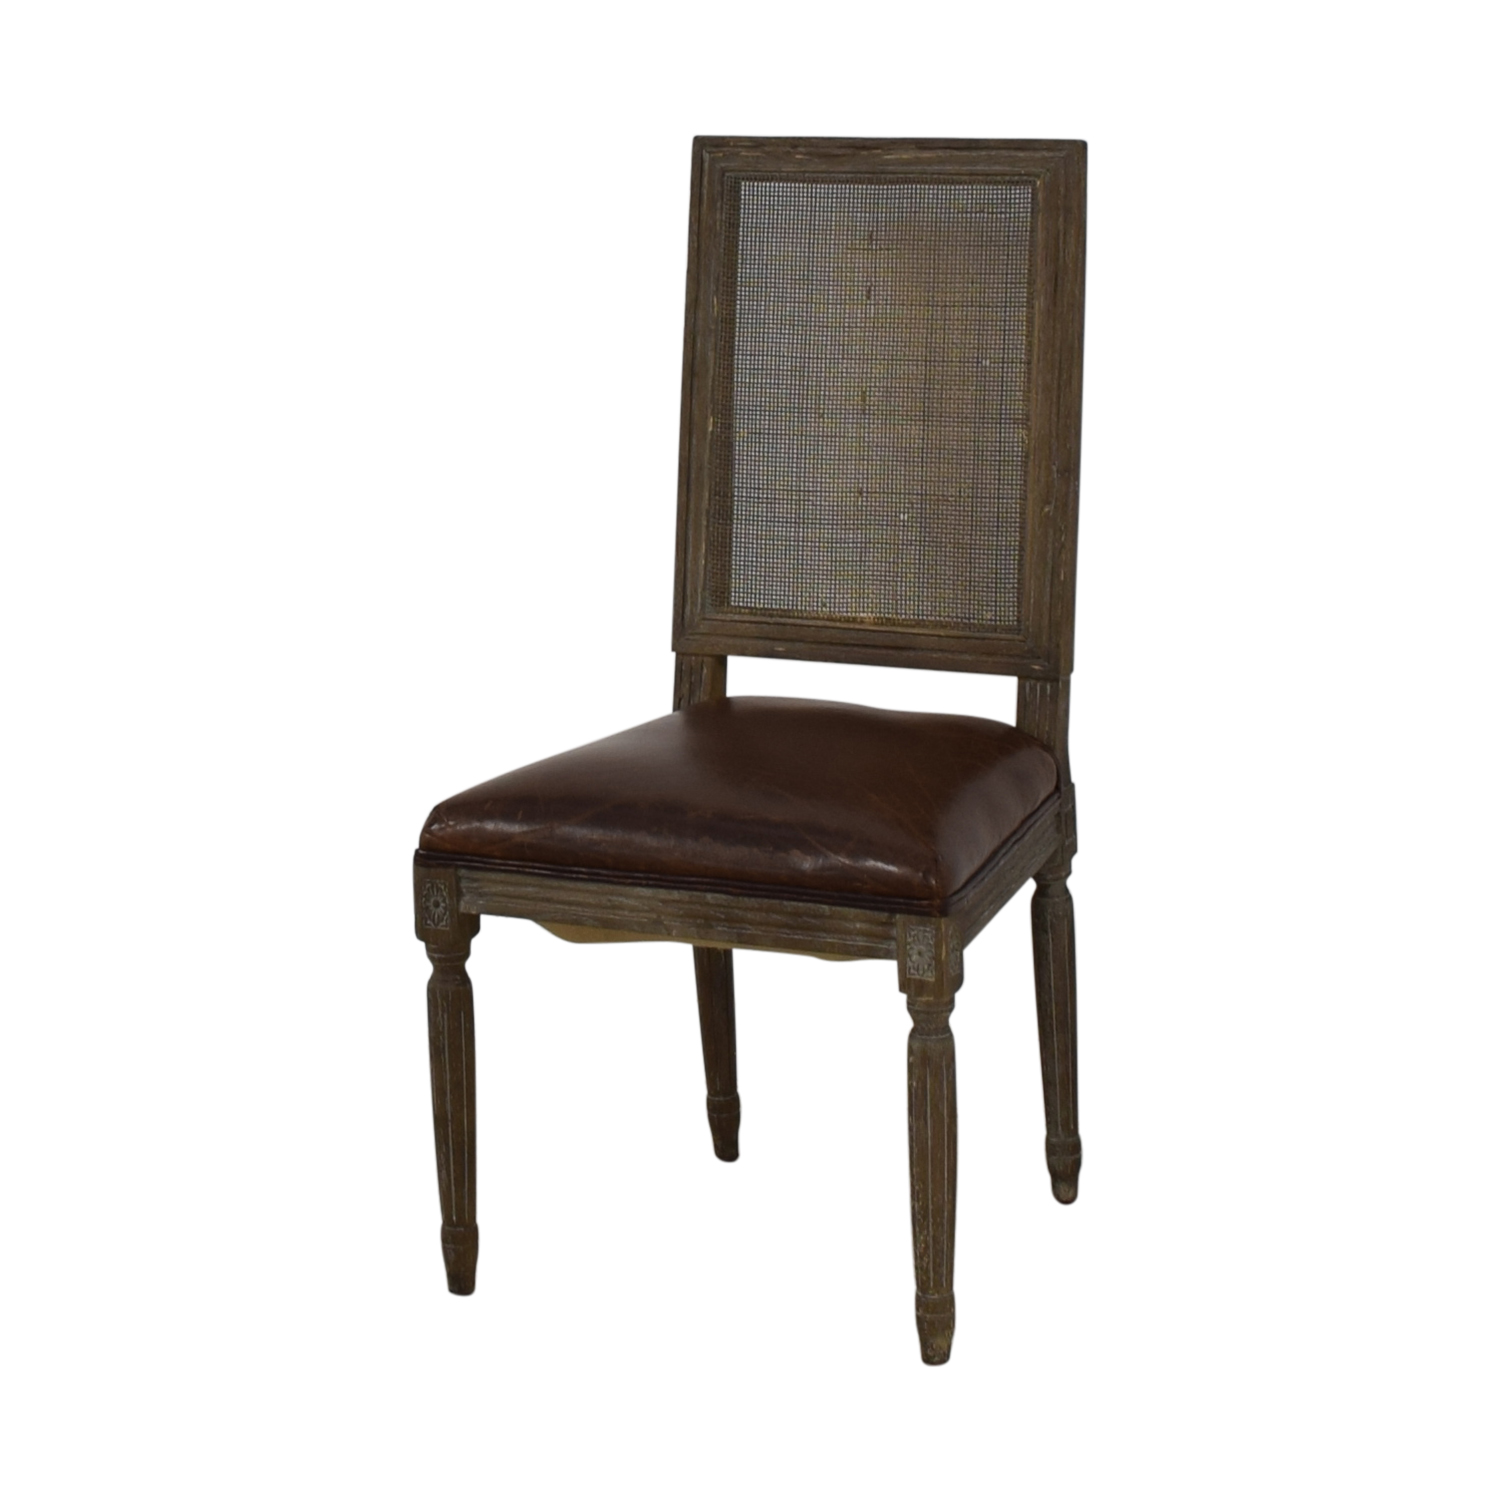 Restoration Hardware Restoration Hardware Vintage French Square Cane Back Leather Side Chair coupon